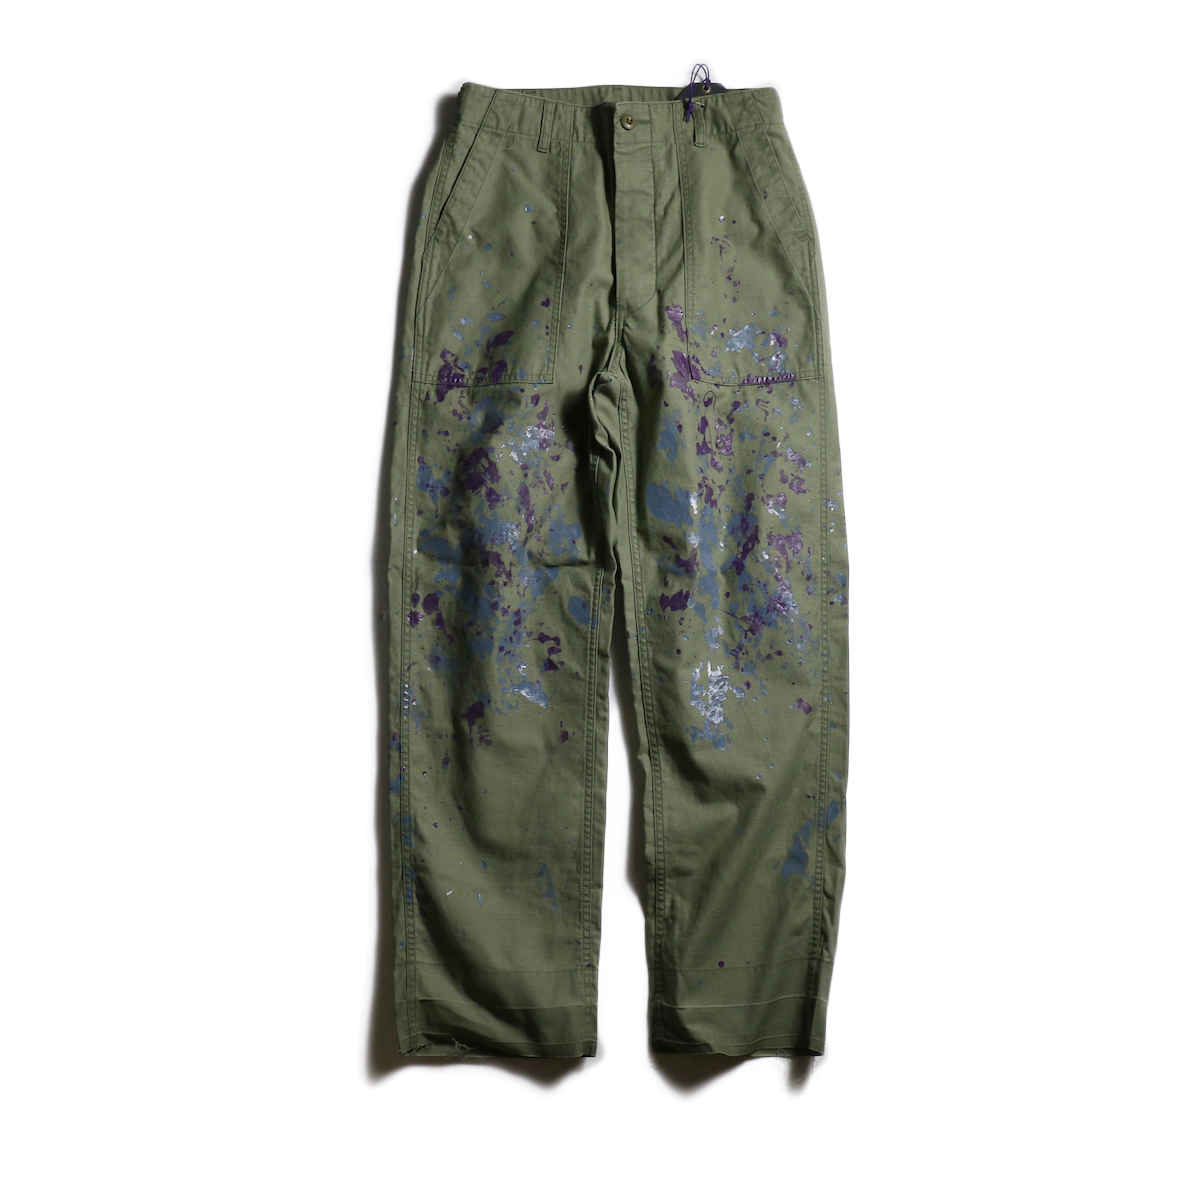 Needles / Fatigue Pant -Back Steen/Paint (Olive)